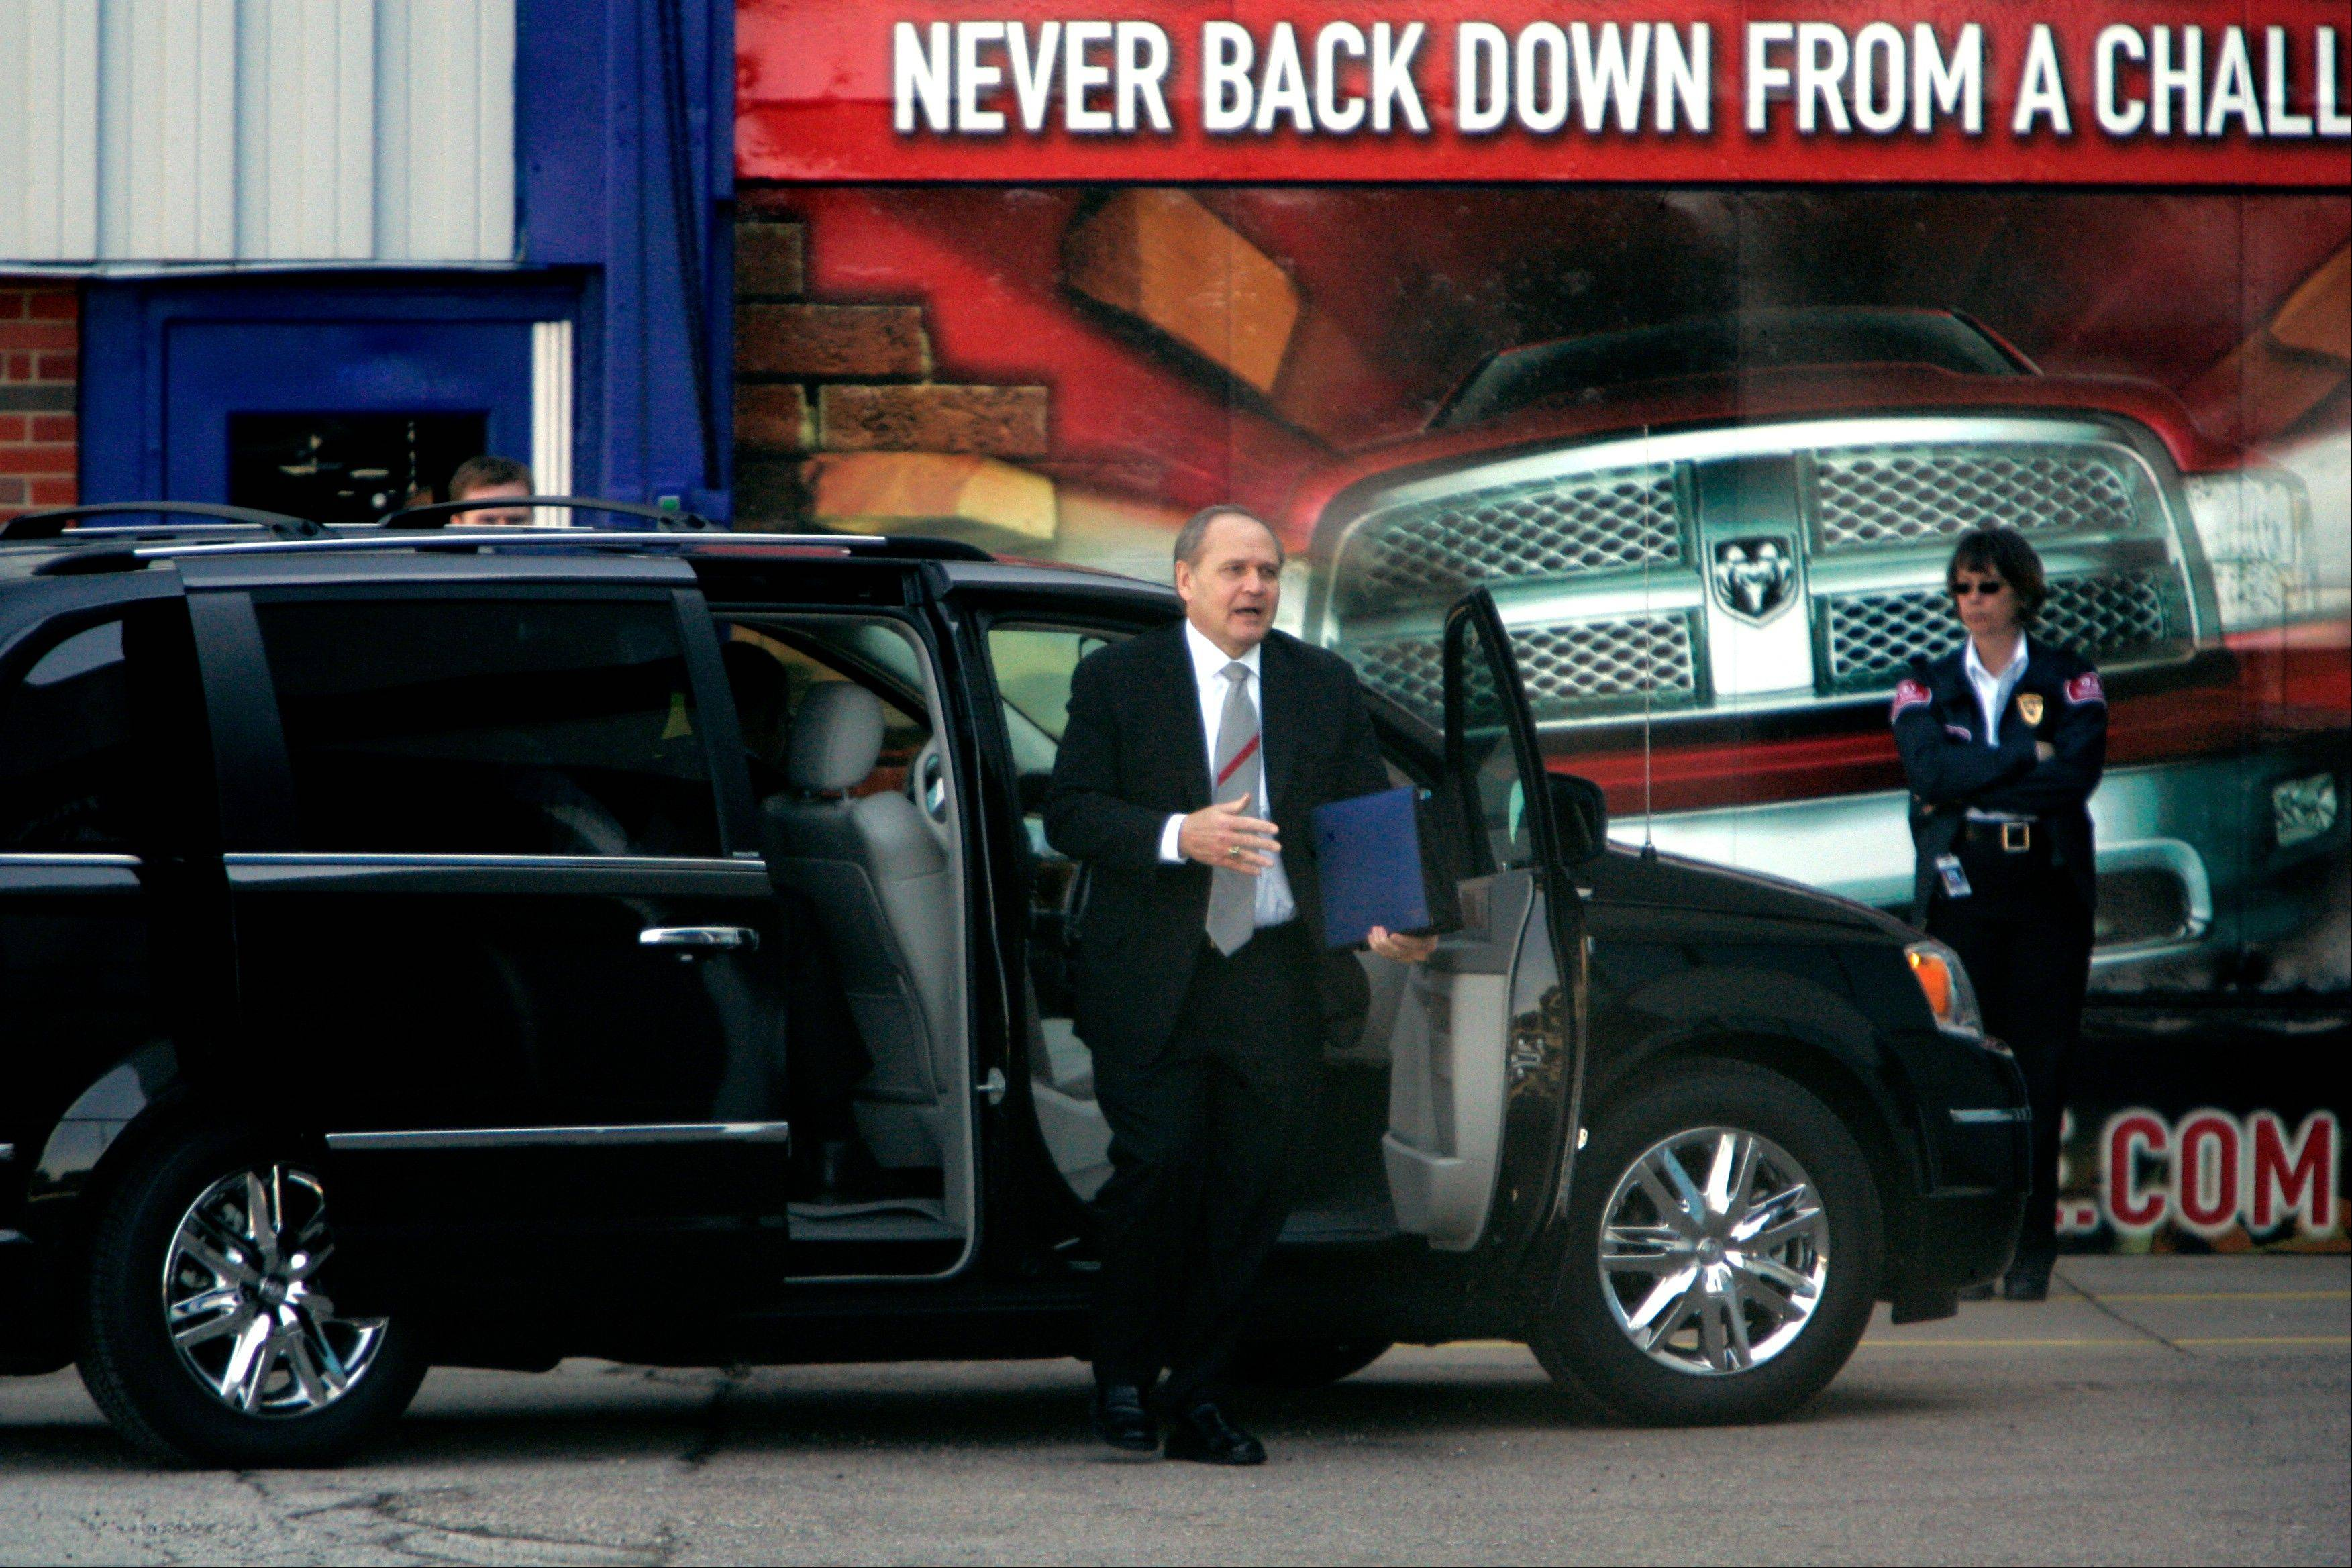 Chrysler Chairman and chief executive Bob Nardelli arrives for a meeting with members of the Obama administration�s auto task force at the automaker�s Warren Truck Assembly in Warren, Mich., in 2009. The task force met with General Motors Corp. executives earlier in the day. The government bailout of General Motors and Chrysler is one of the most polarizing issues of the presidential campaign.